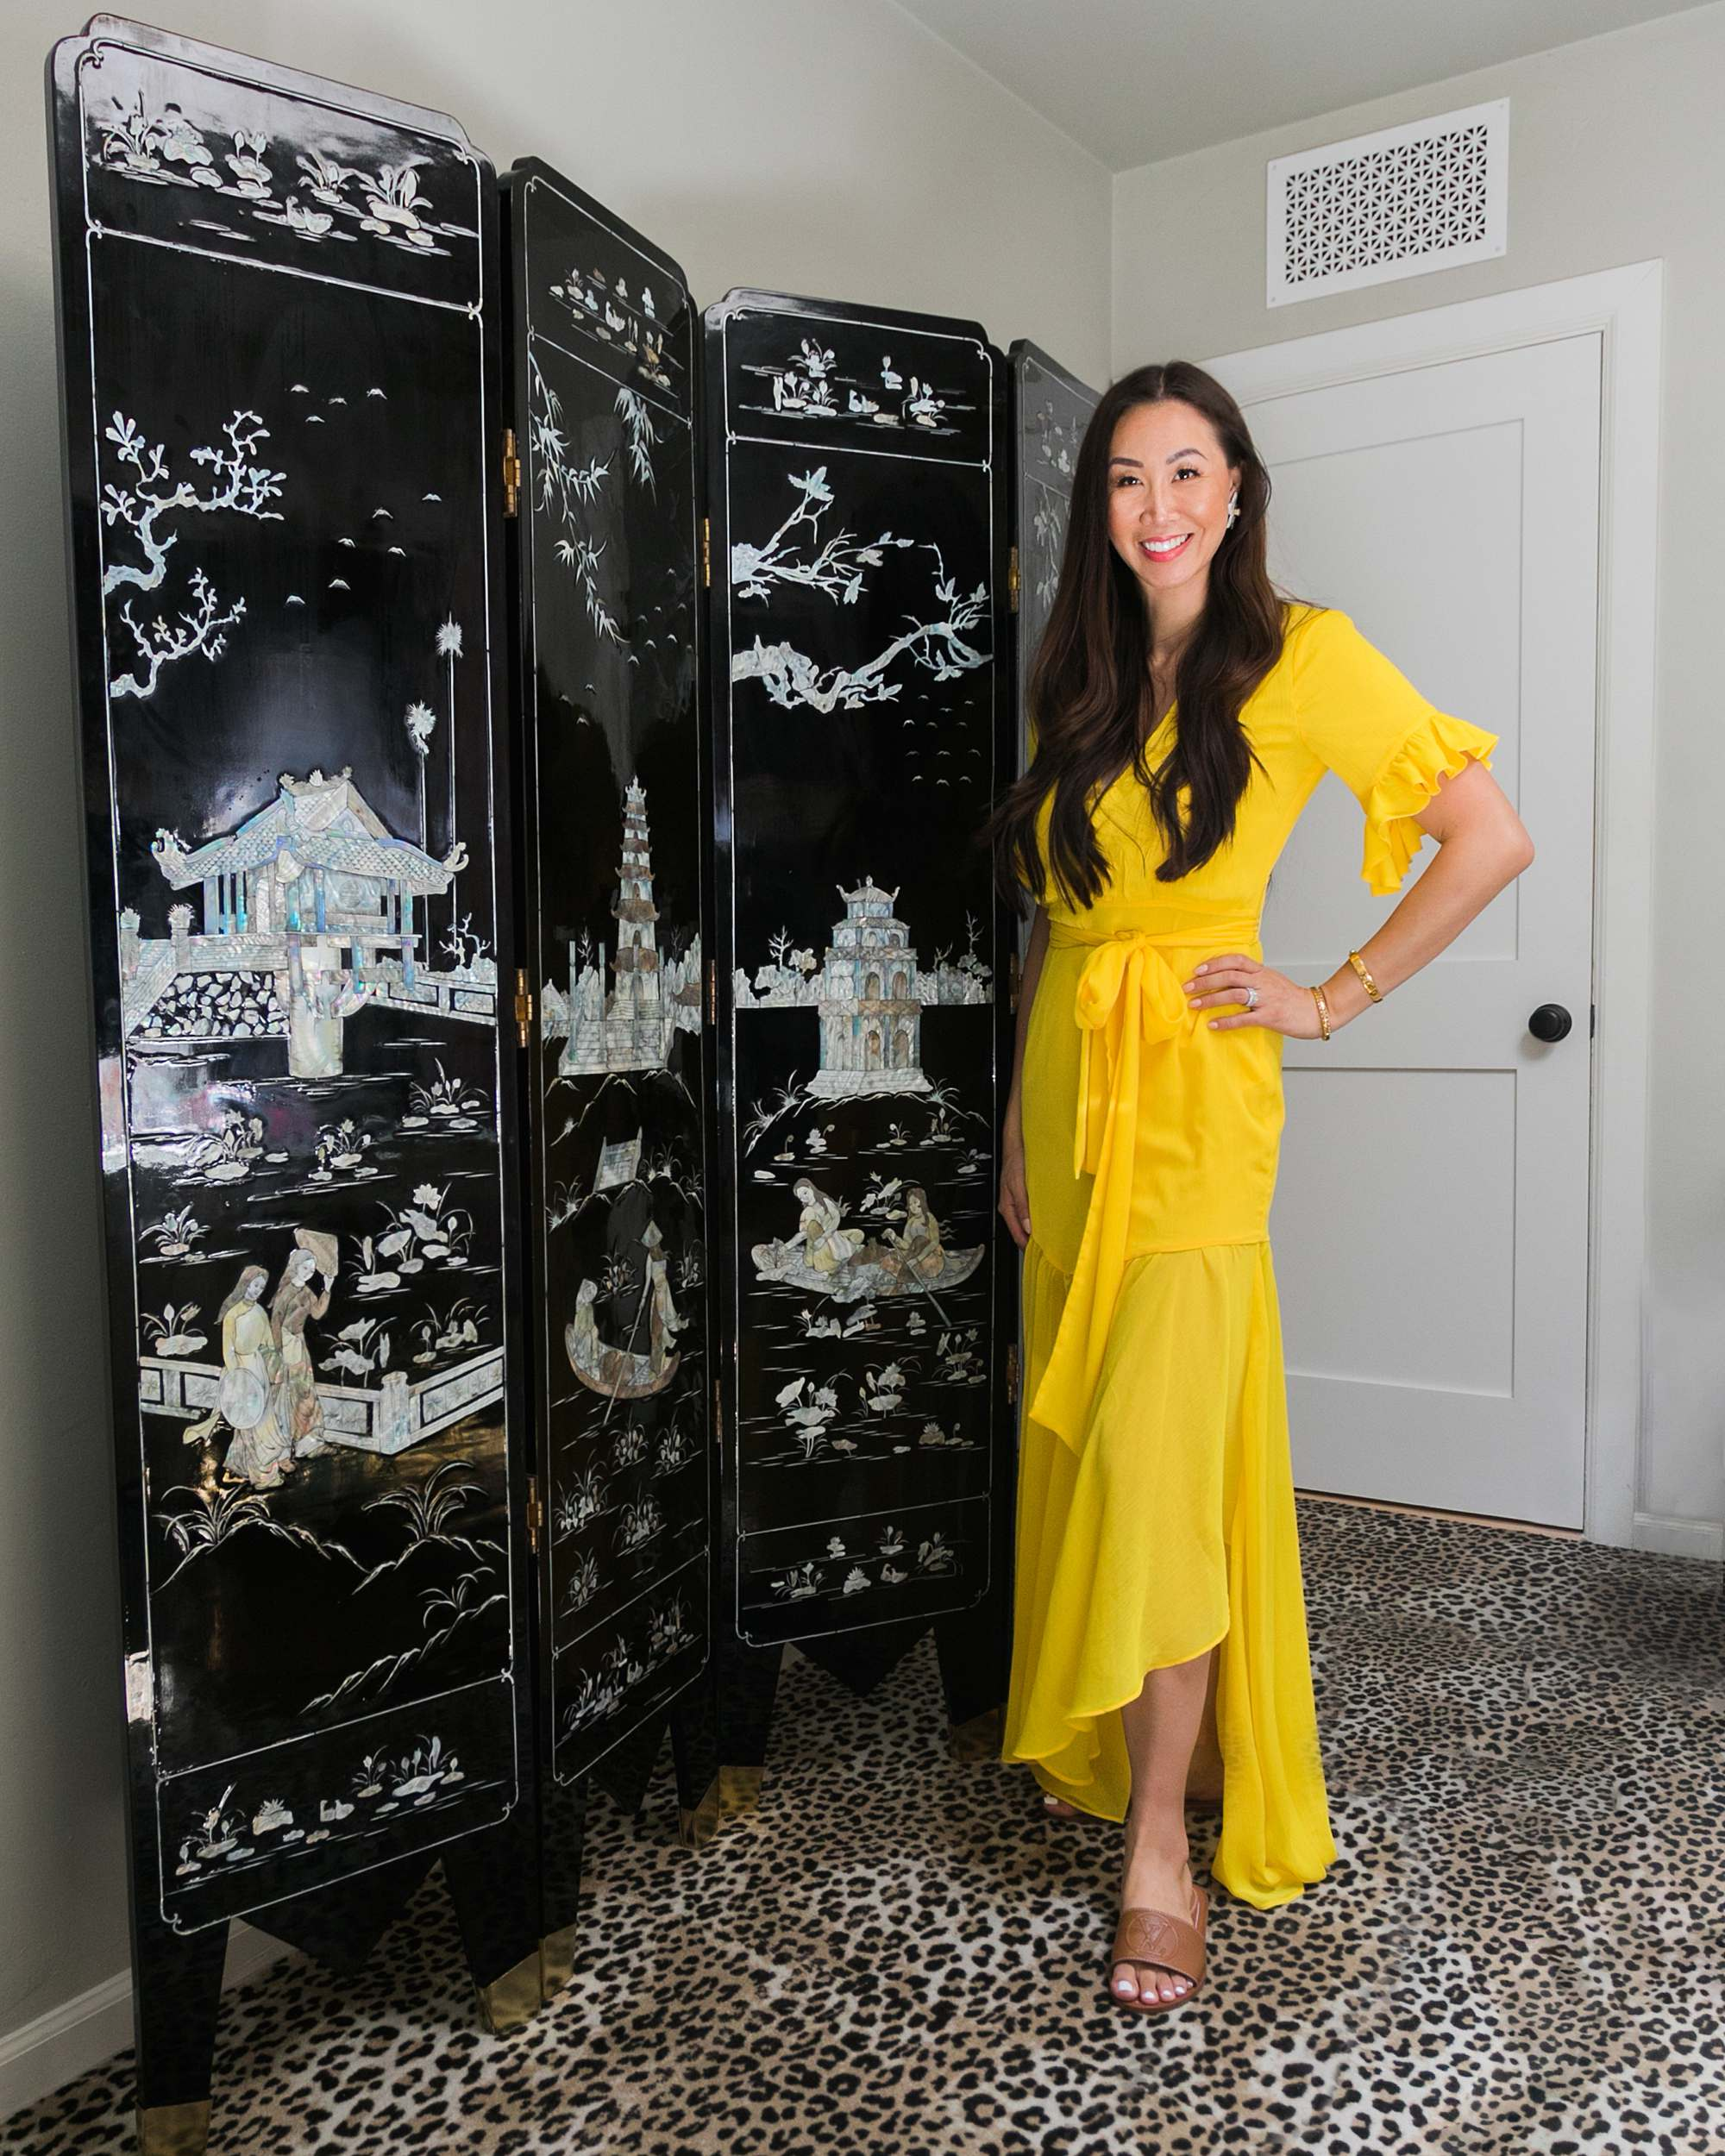 mother of pearl vintage antique Chinese panel phoenix home blogger leopard print carpet woman standing in yellow dress- discussing antiques and ebay finds on the blog